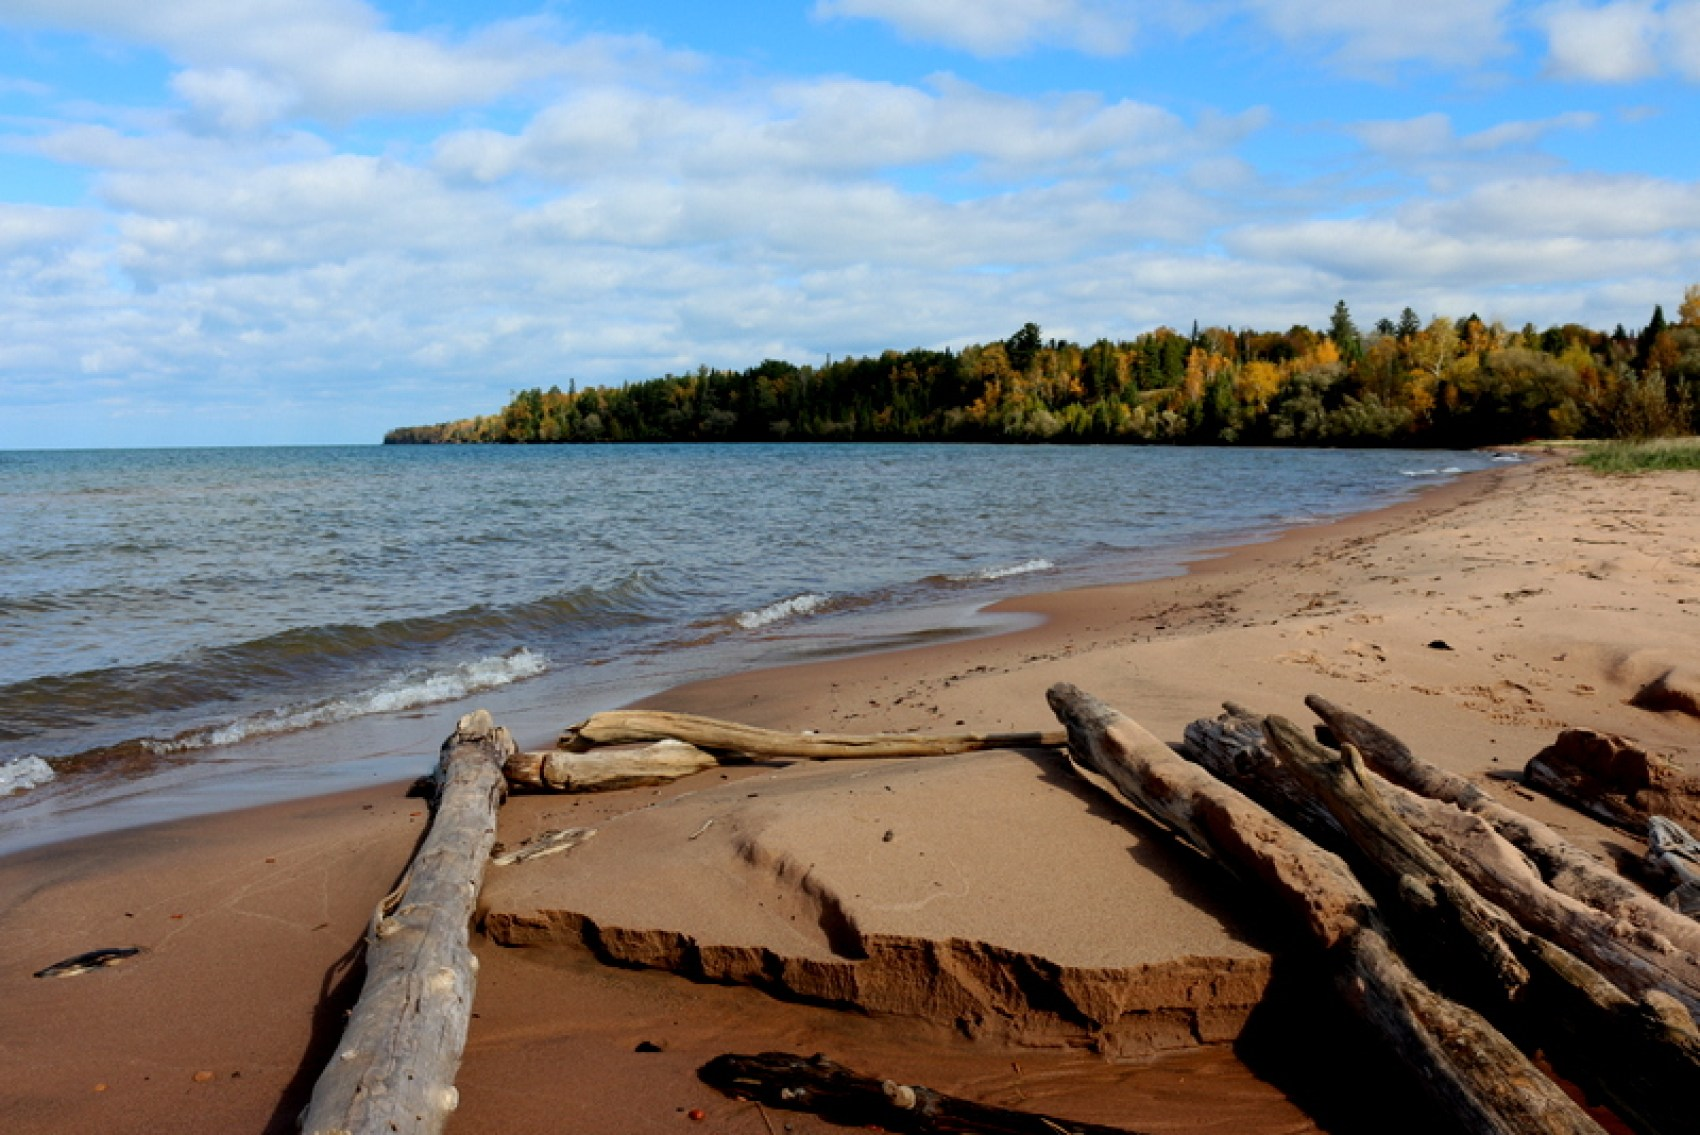 Apostle Islands National Lakeshore encompasses 21 islands as well as shoreline along Lake Superior in northern Wisconsin. The distinctive geology of the area is a result of glacial activity many thousands of years ago leaving beautiful sandstone formations that dazzle the eye.